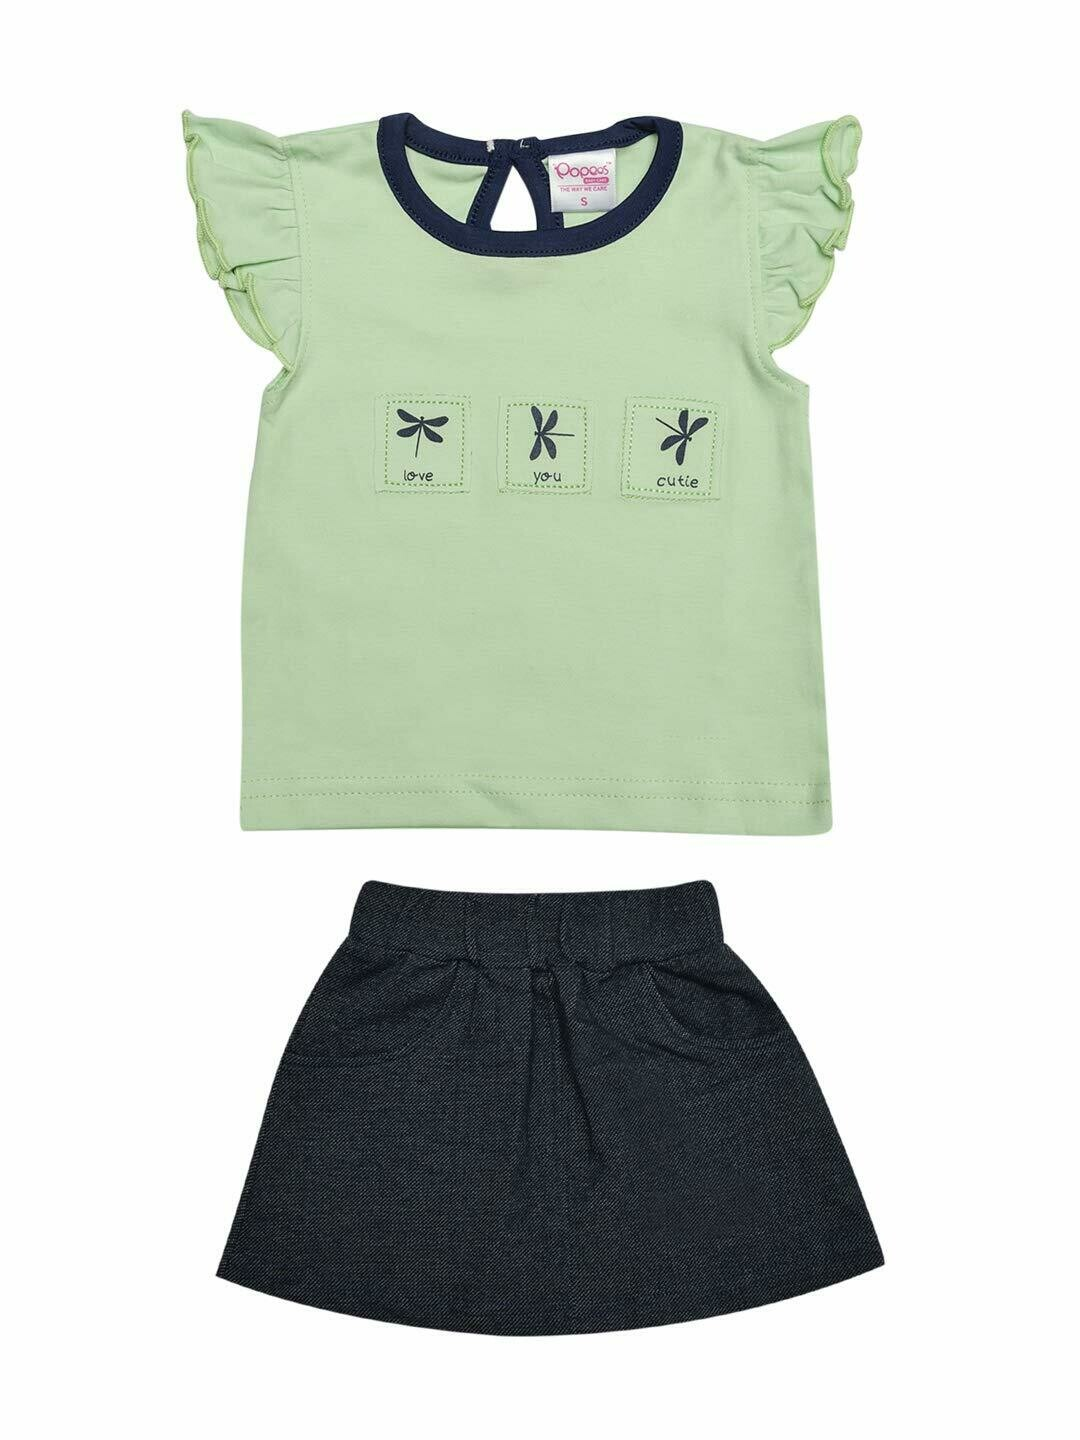 Zest Pastel Green Cap Sleeves Round Neck Top with Skirt for Girls